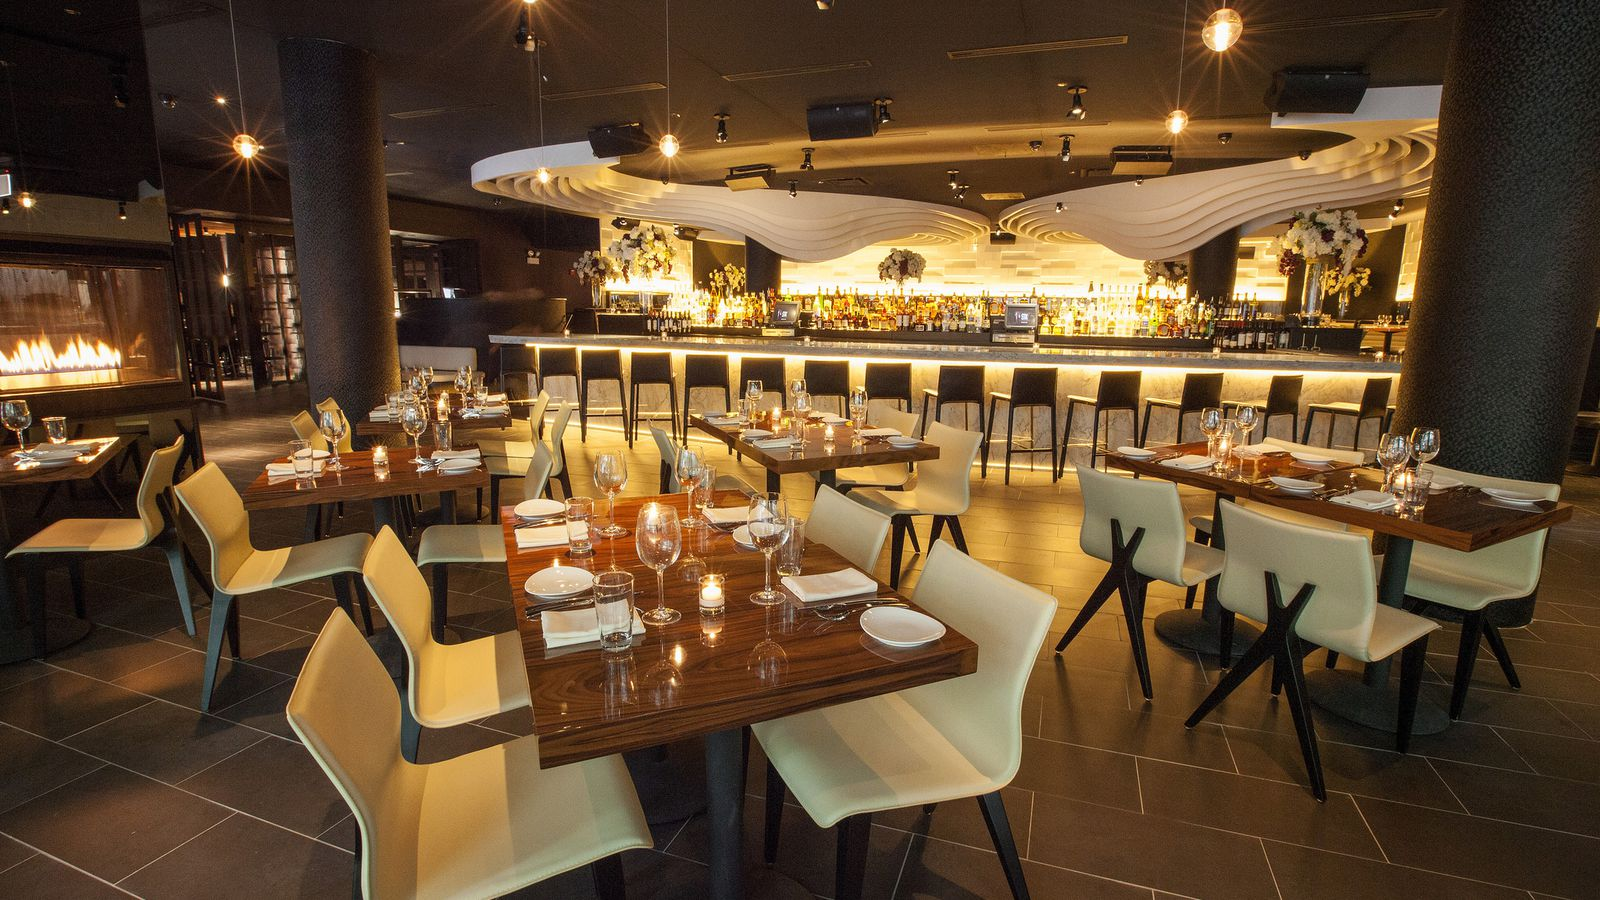 Stk private dining